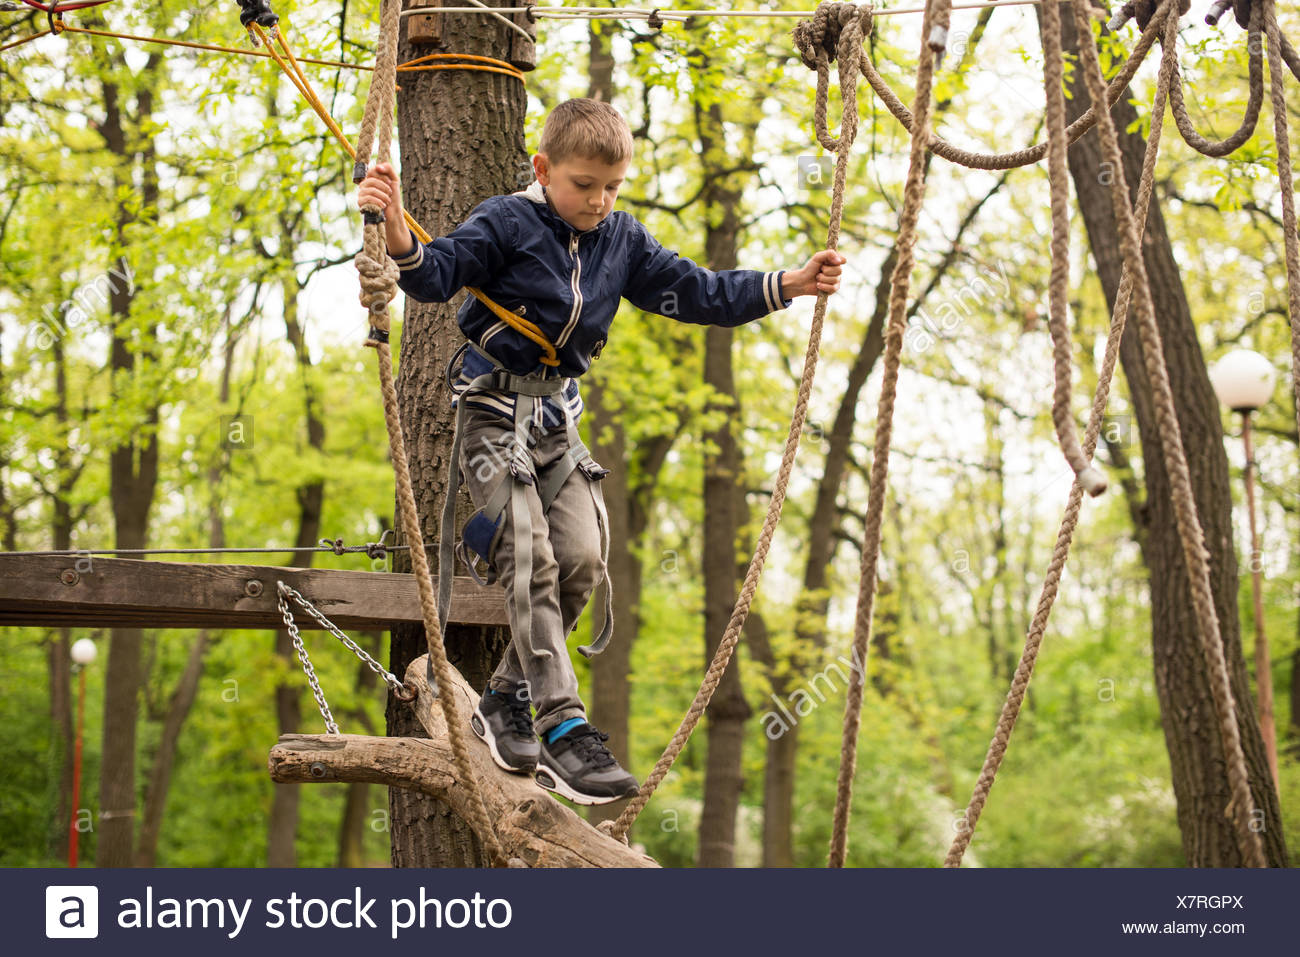 Boy in rope harness on climbing platform in tree in adventure park - Stock Image